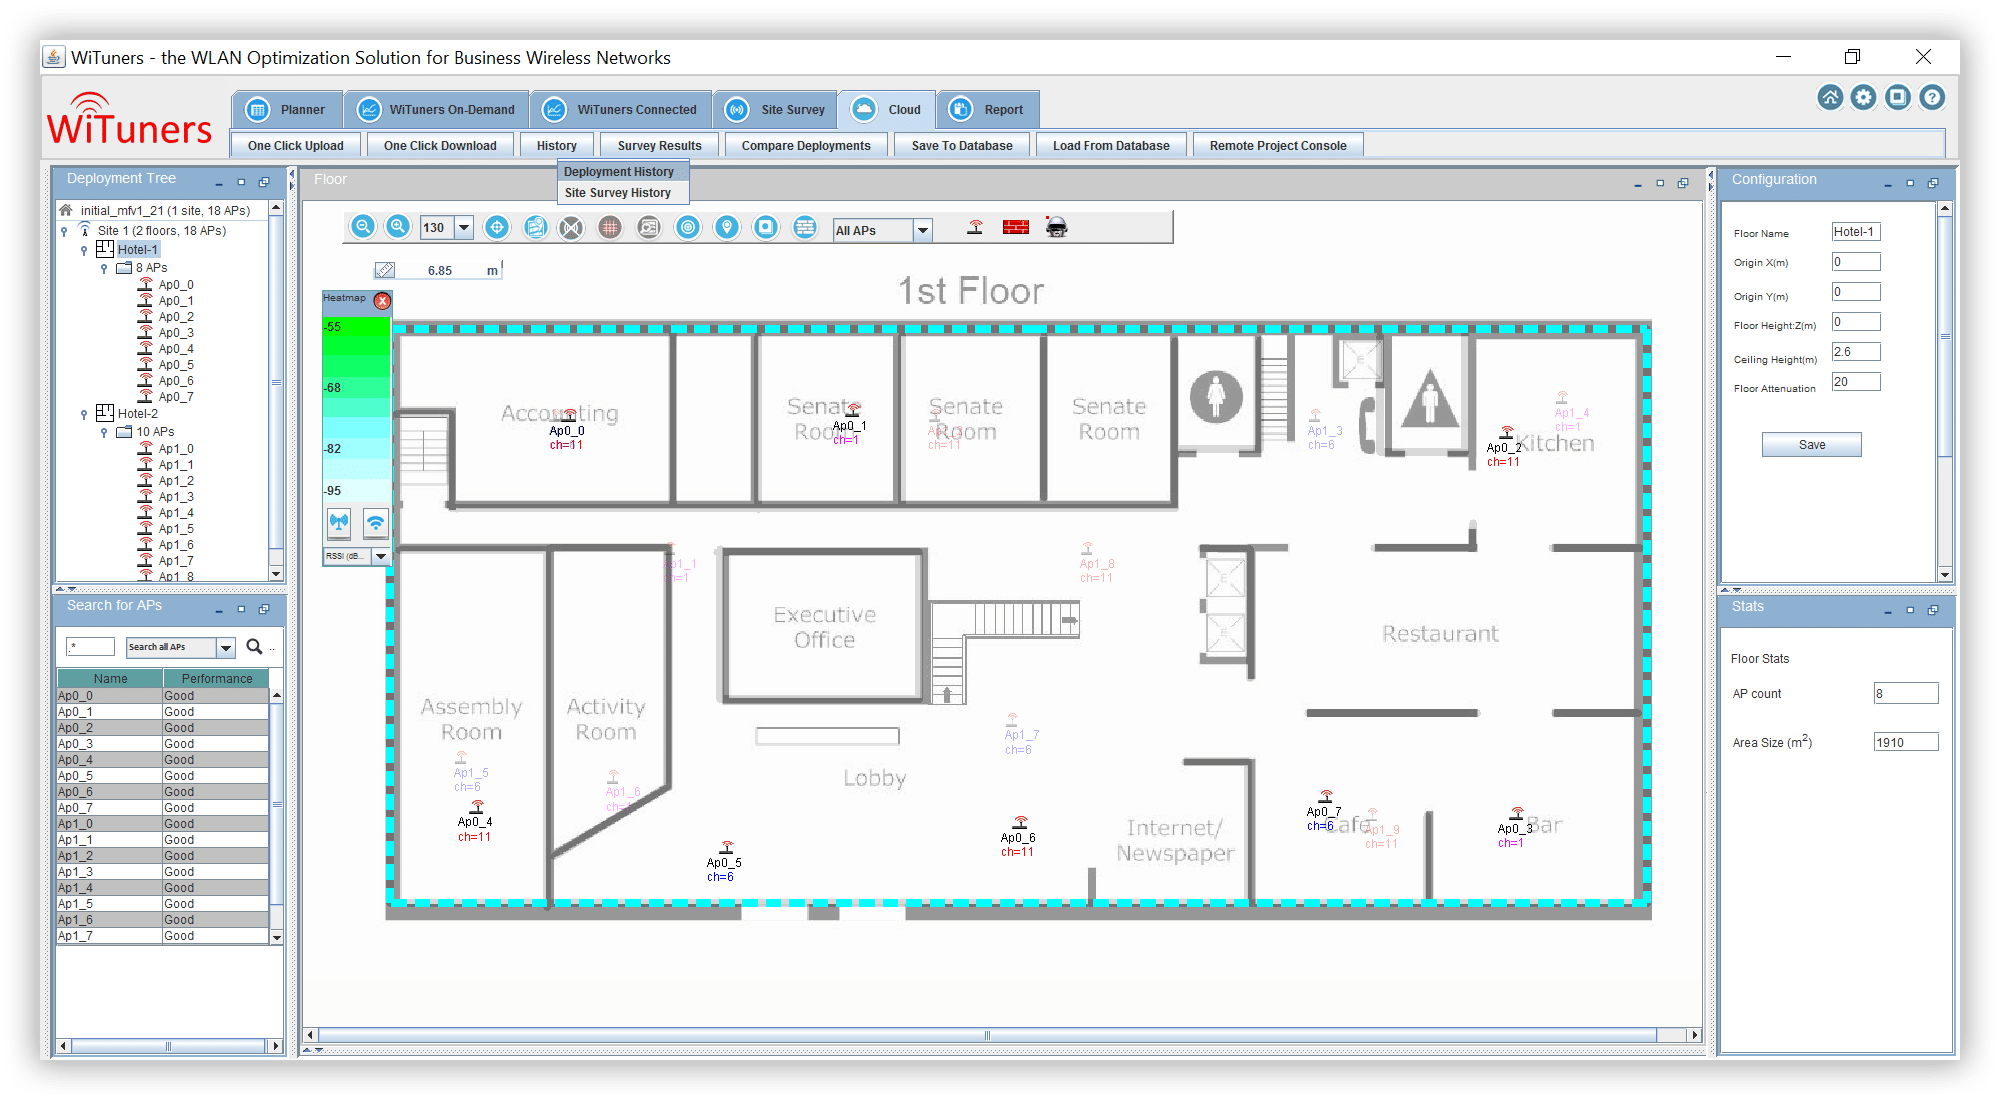 wlan deployment and site survey history in WiFi planning software